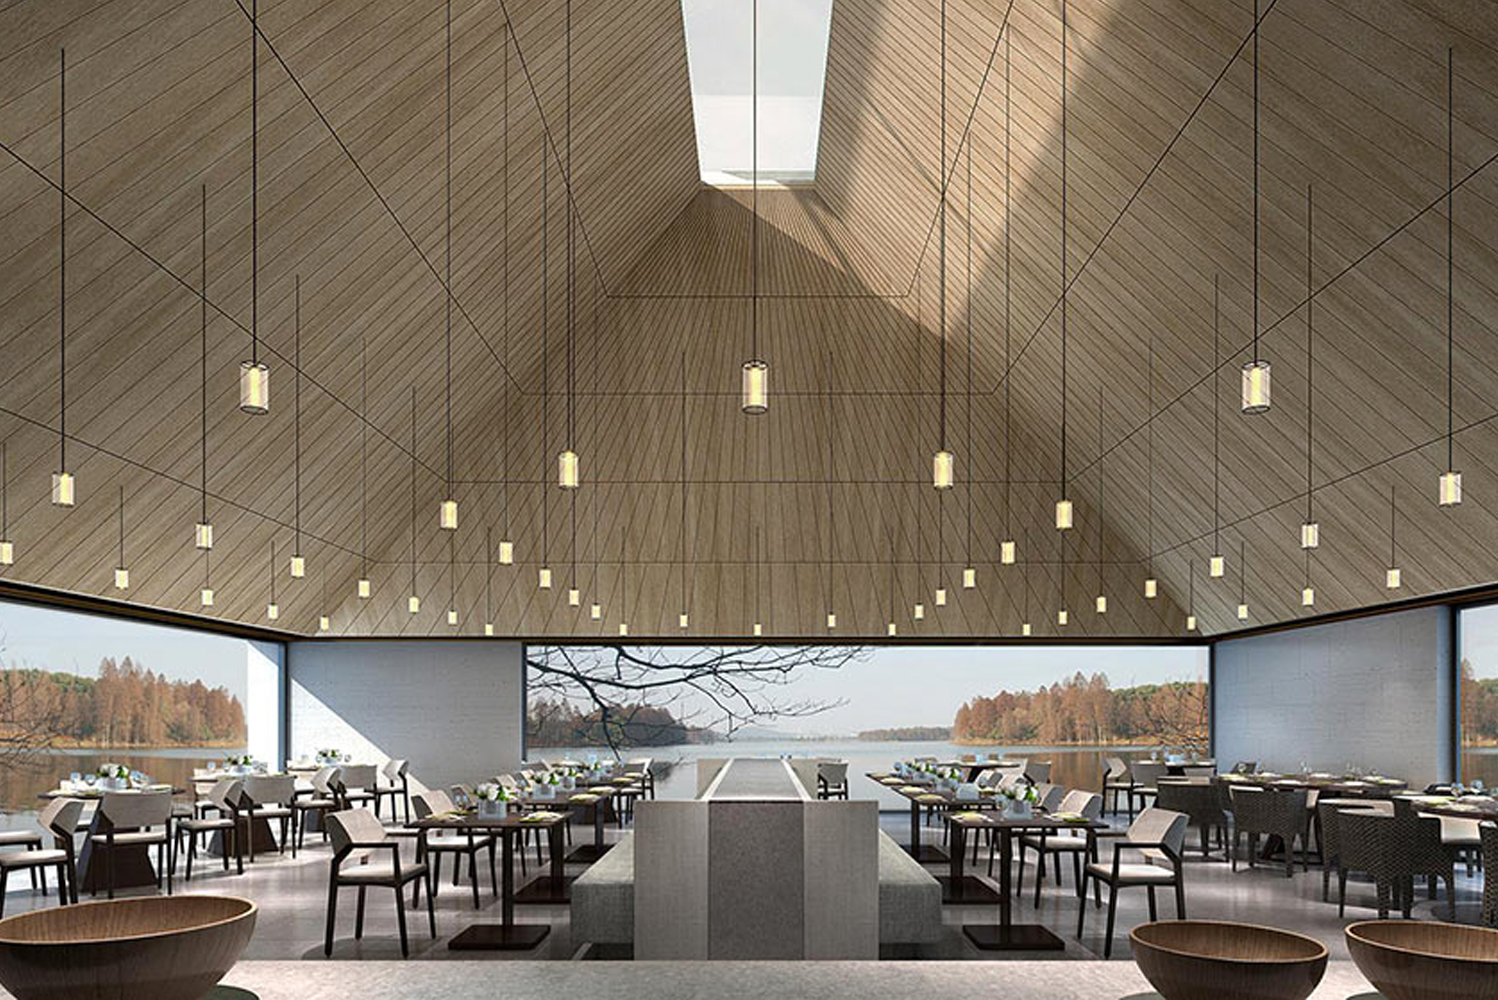 There will be four restaurants and bars, including Shui Shi Kou, Si Shui & Private Dining Room, and Sai Bai.